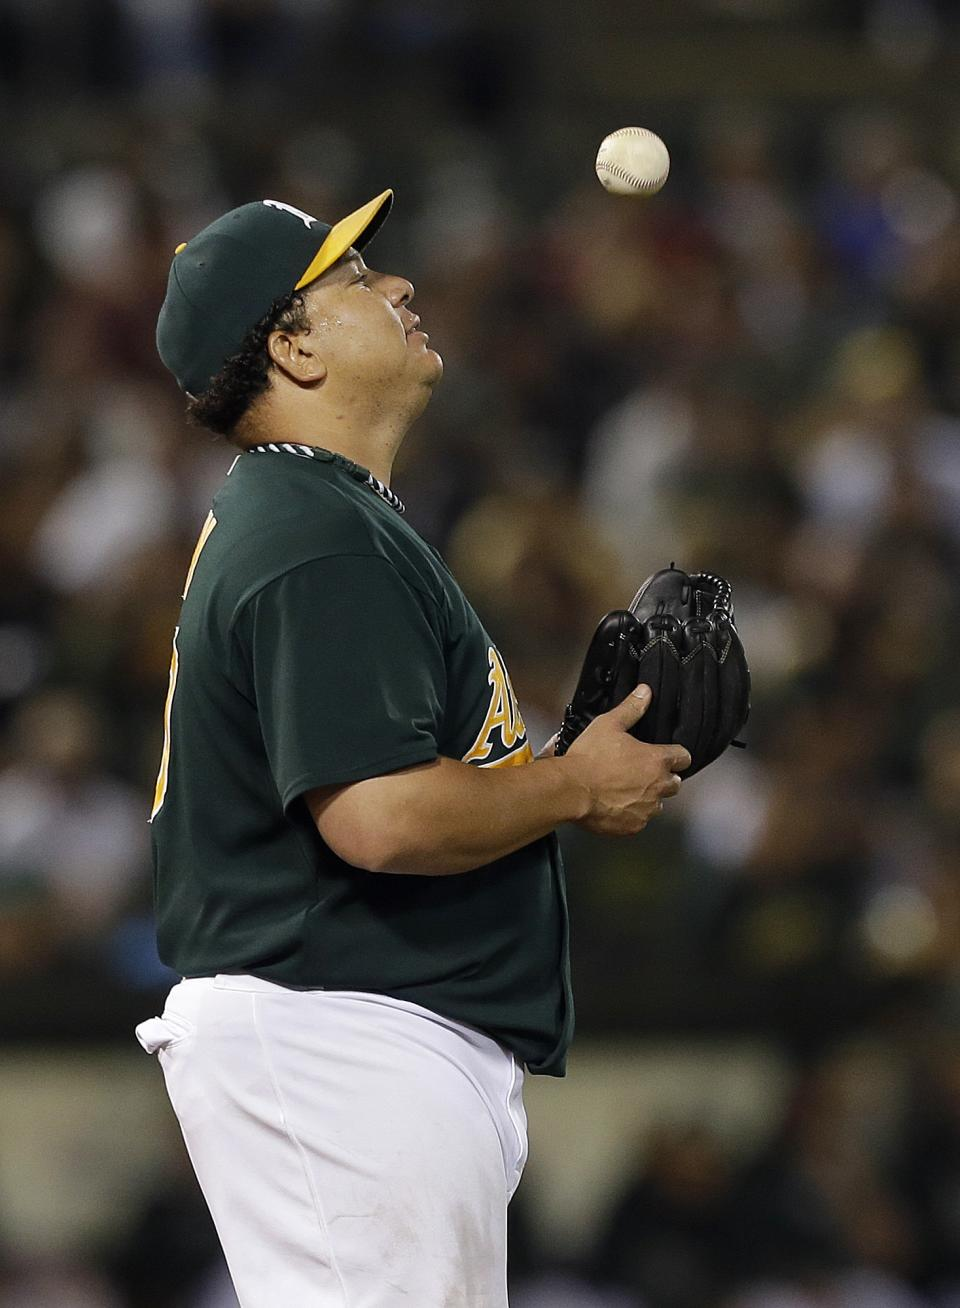 Oakland Athletics pitcher Bartolo Colon tosses the ball while standing on the mound during the fifth inning of a baseball game against the Texas Rangers in Oakland, Calif., Tuesday, Sept. 3, 2013. (AP Photo/Jeff Chiu)